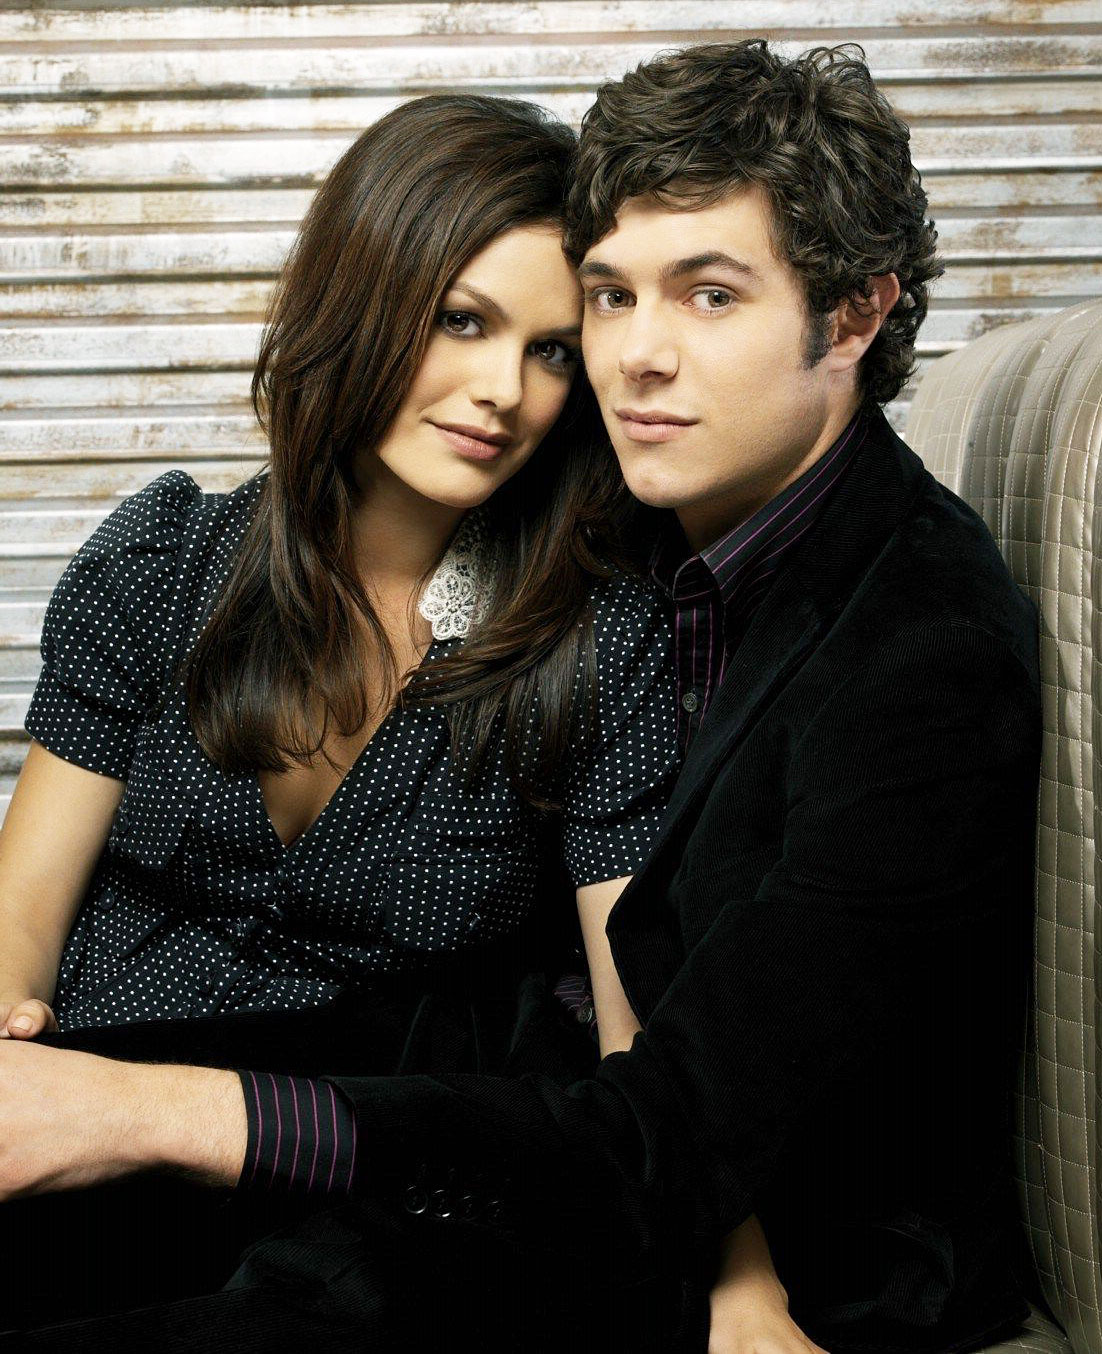 Best TV Couples The OC Rachel Bilson Adam Brody - Show: The O.C. Actors: Rachel Bilson and Adam Brody Network: FOX Seasons: 4